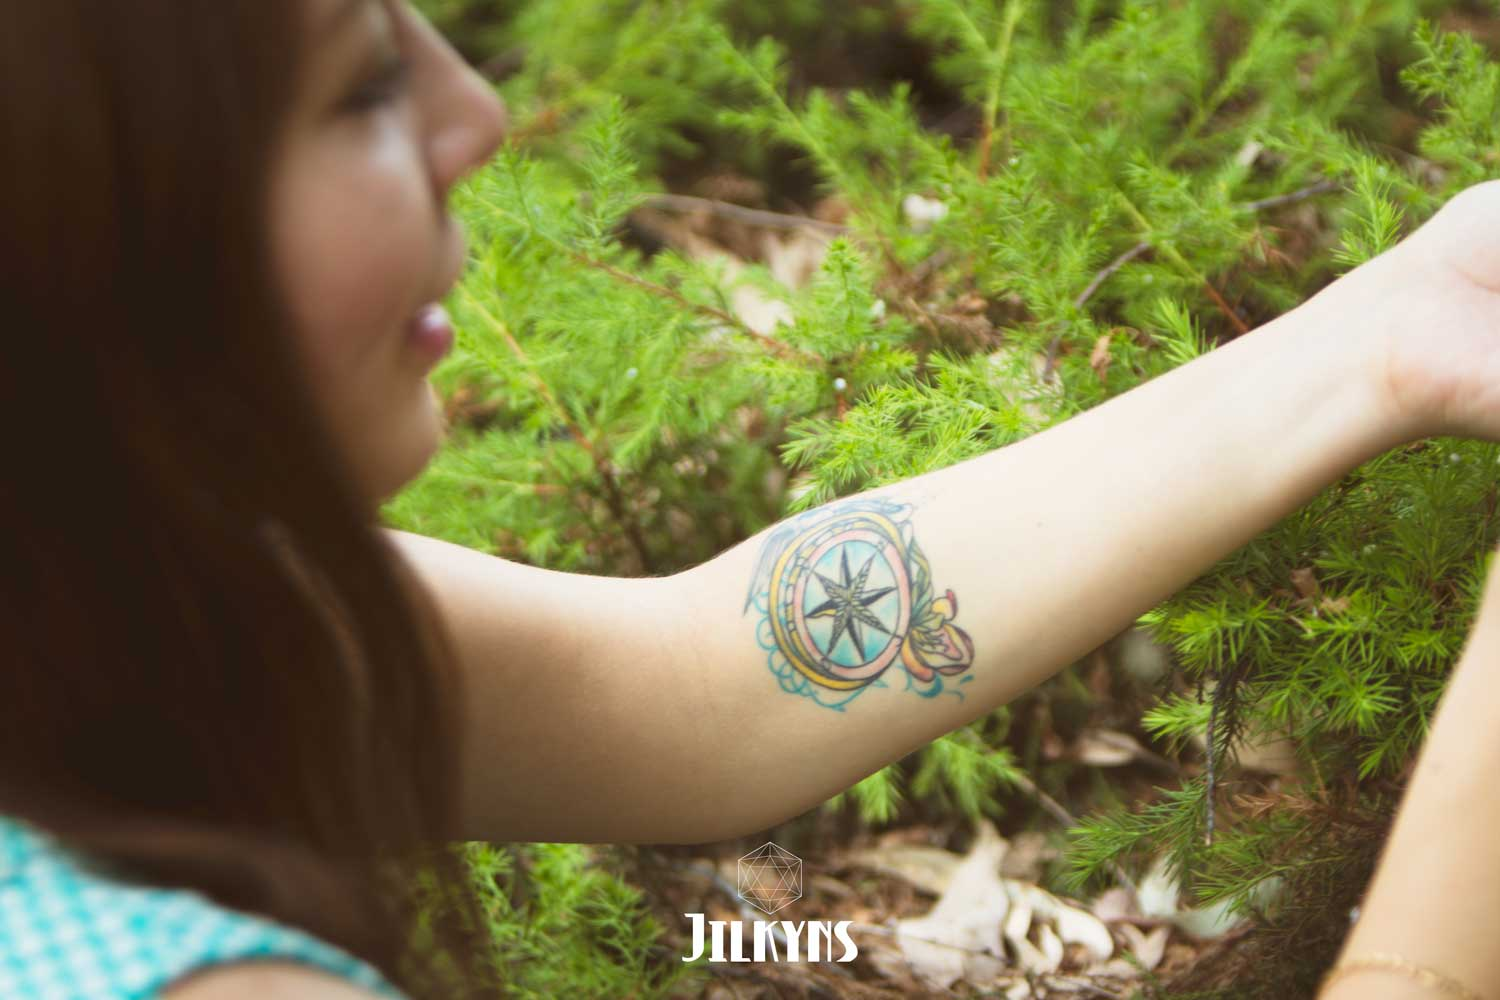 compass tattoo photo by Jilkyns